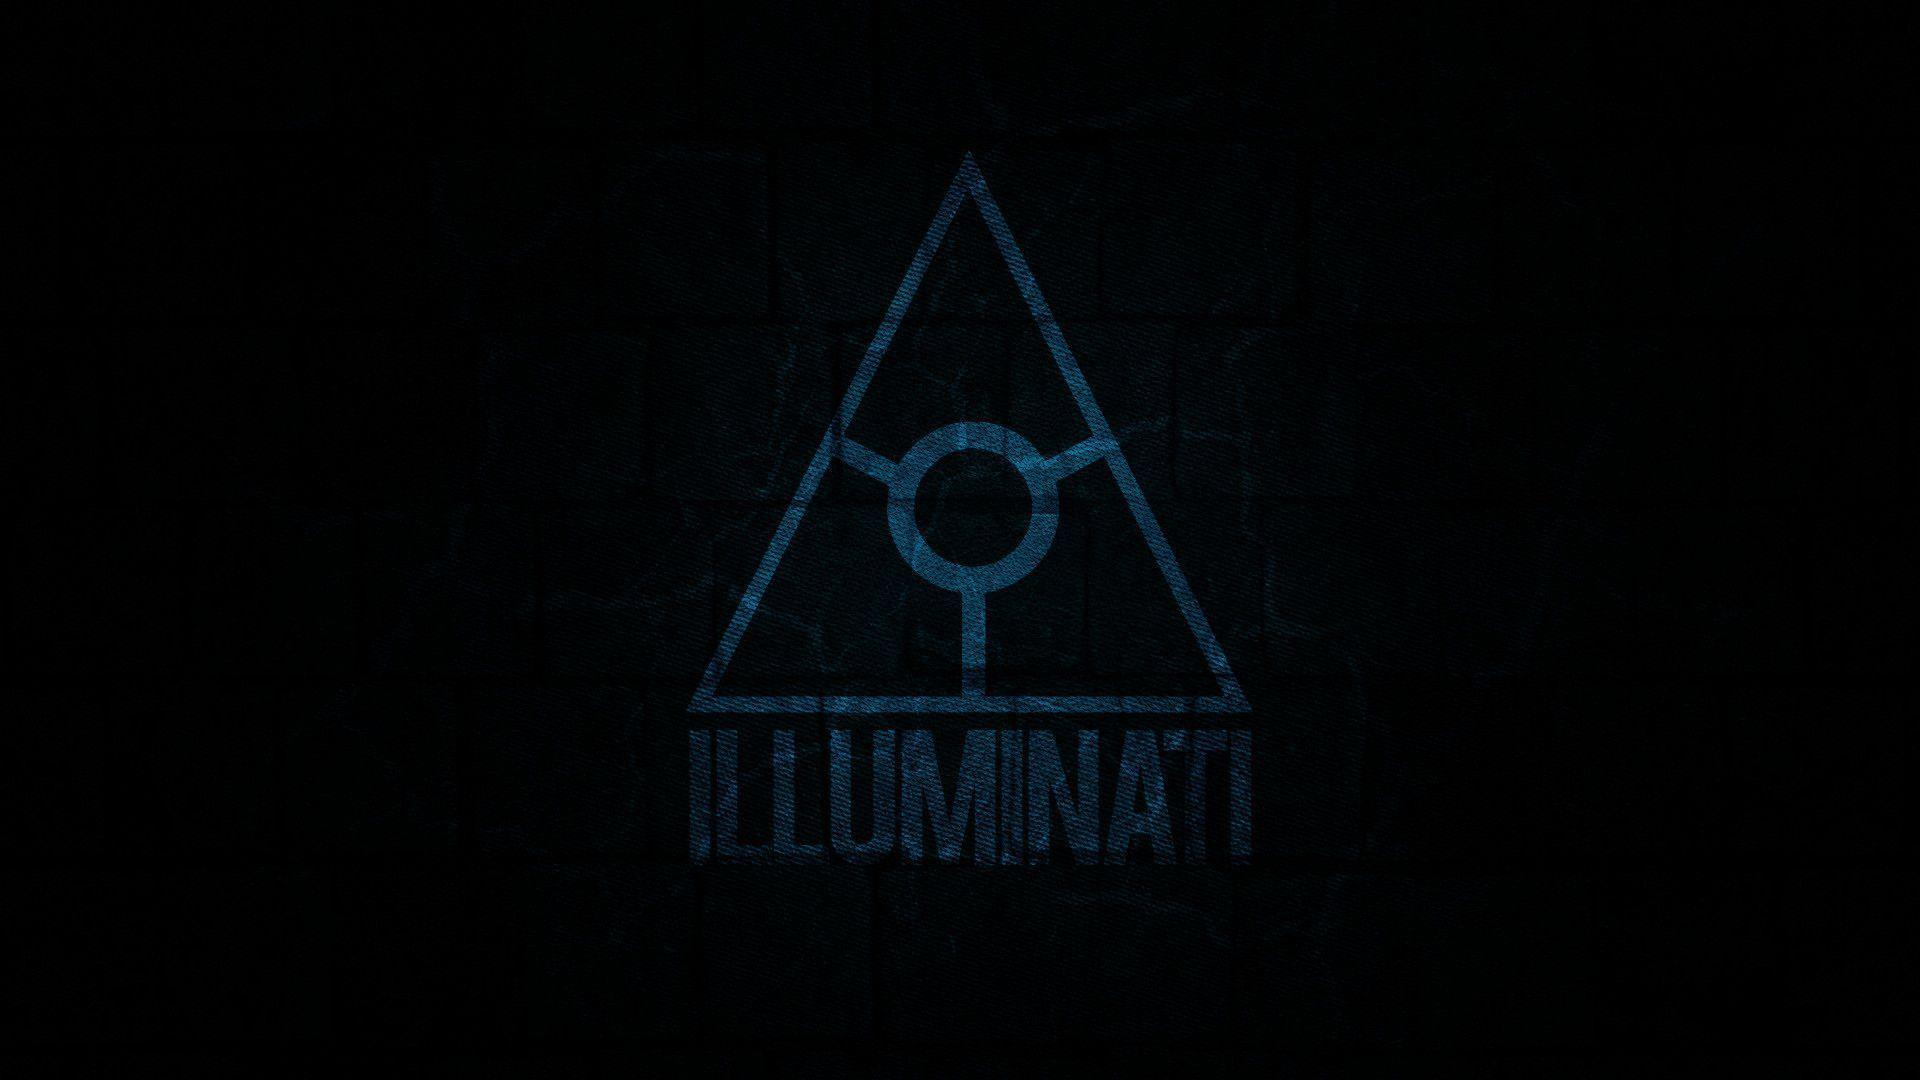 Illuminati Wallpapers - Wallpaper Cave